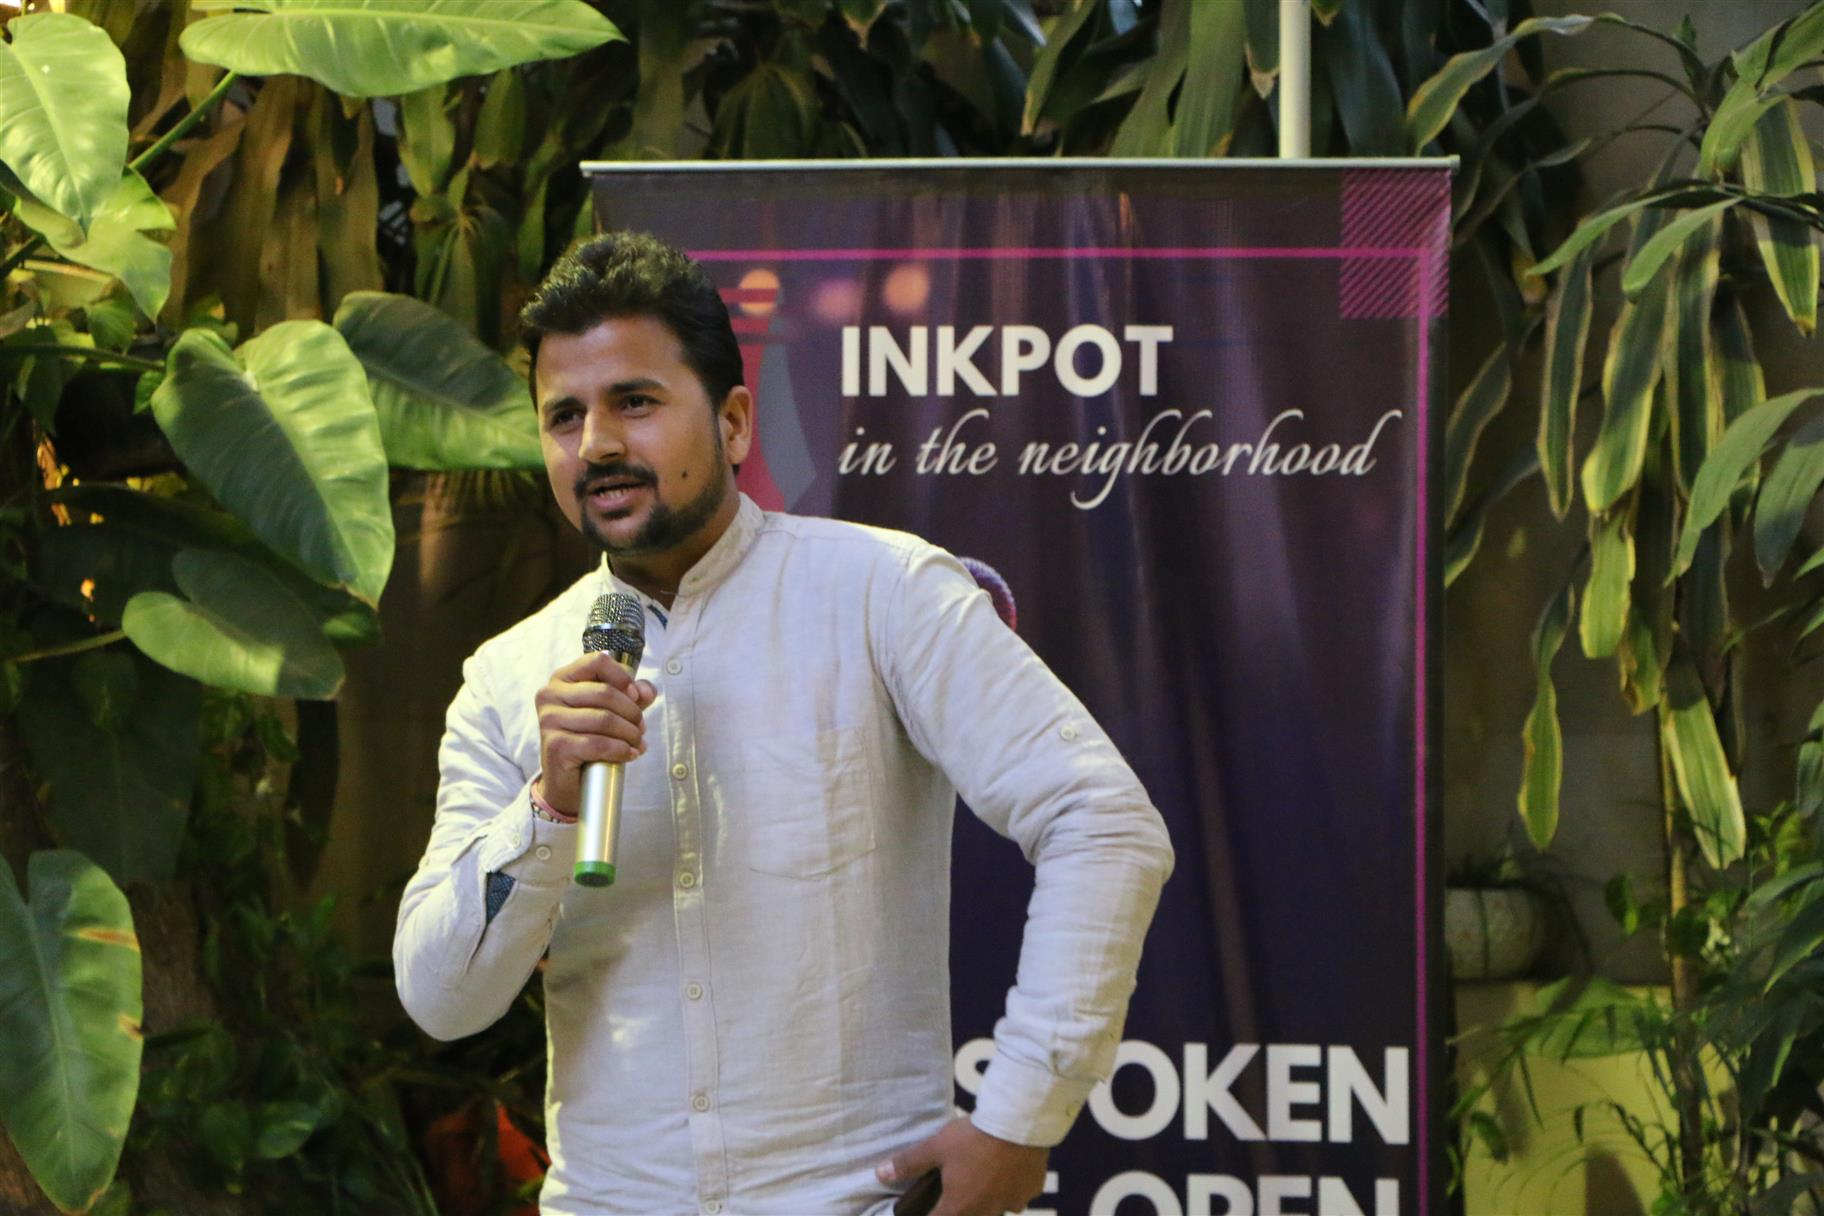 Inkpot in the Neighbourhood, Outspoken in the Open